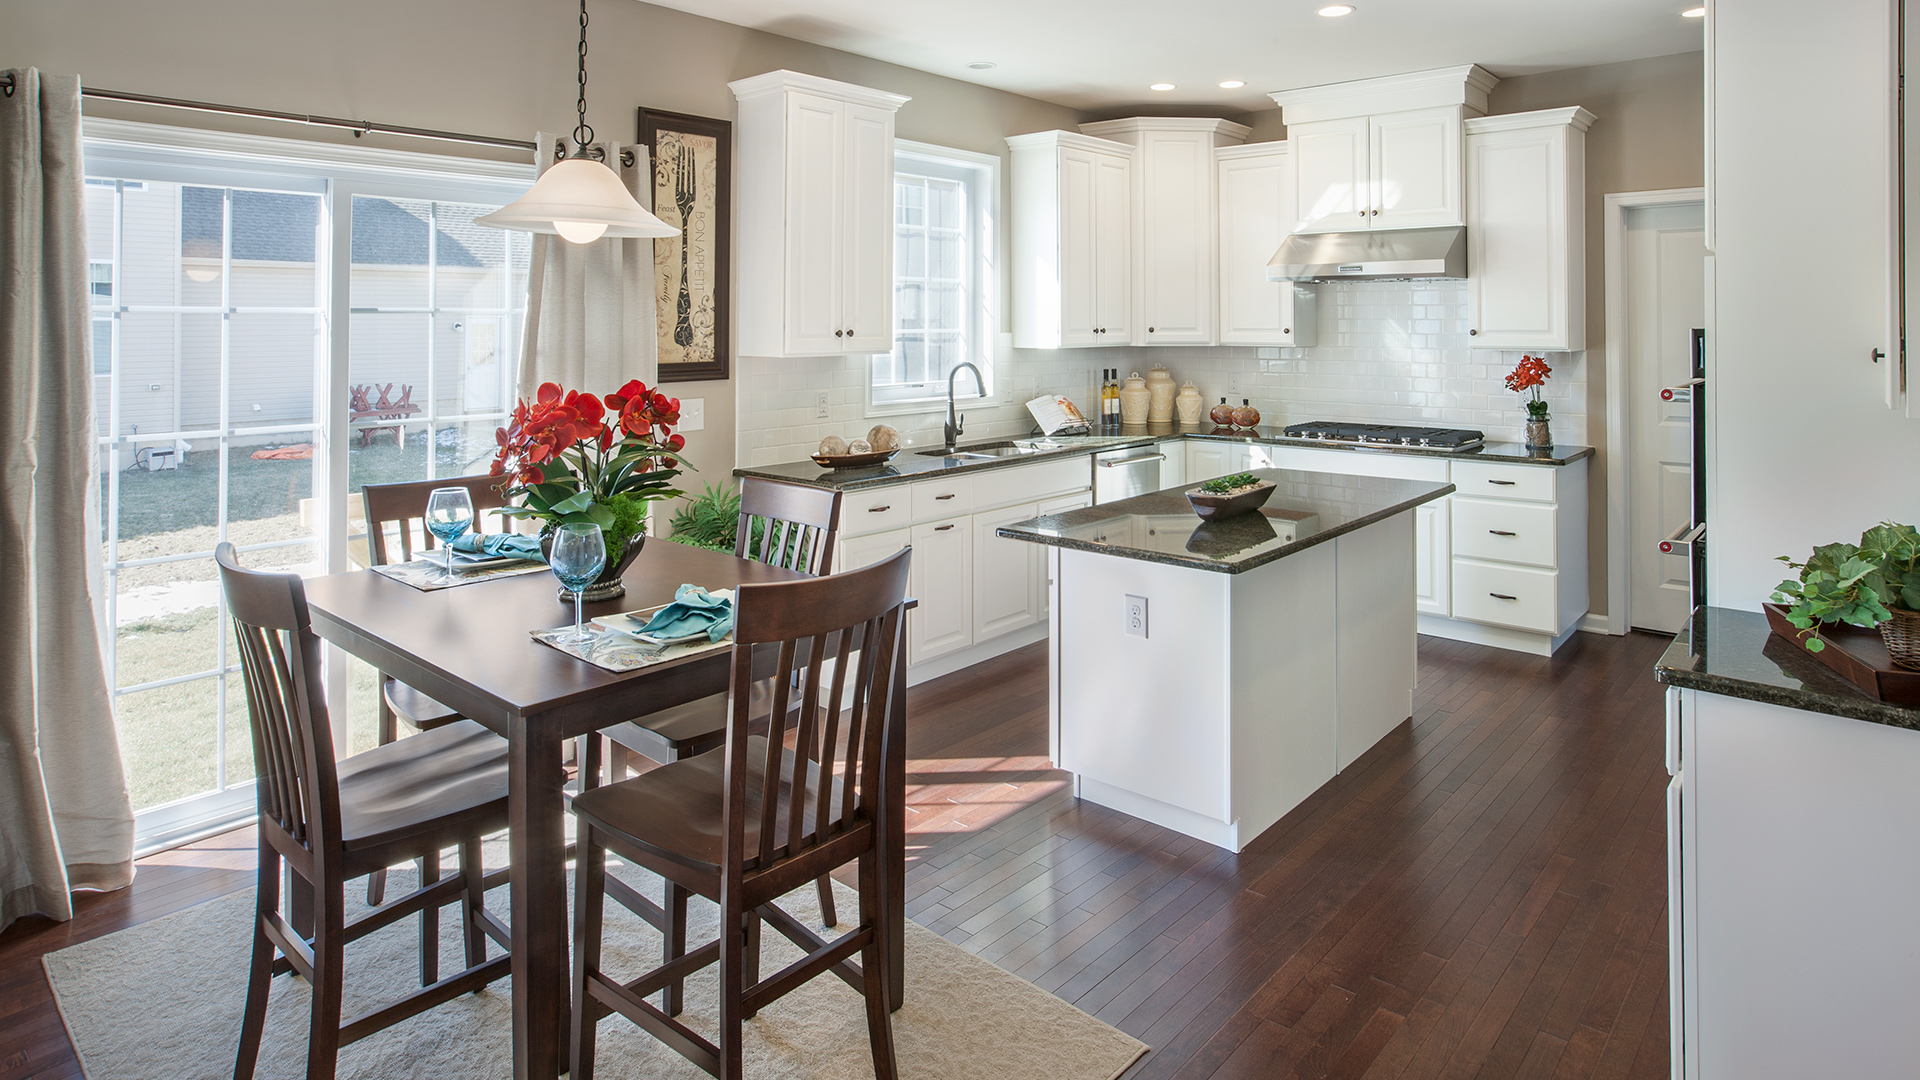 Bowes Creek Country Club - The Fairways Collection   The ... on bristol home plans, newport home plans, phoenix home plans, ashland home plans, open floor small home plans, texas home plans, chatham home plans, hampton home plans, english countryside home plans, miami home plans, savannah home plans, washington home plans, wisconsin home plans, idaho home plans, hudson home plans, martha's vineyard home plans, loggia home plans, gardner home plans, connecticut home plans, franklin home plans,